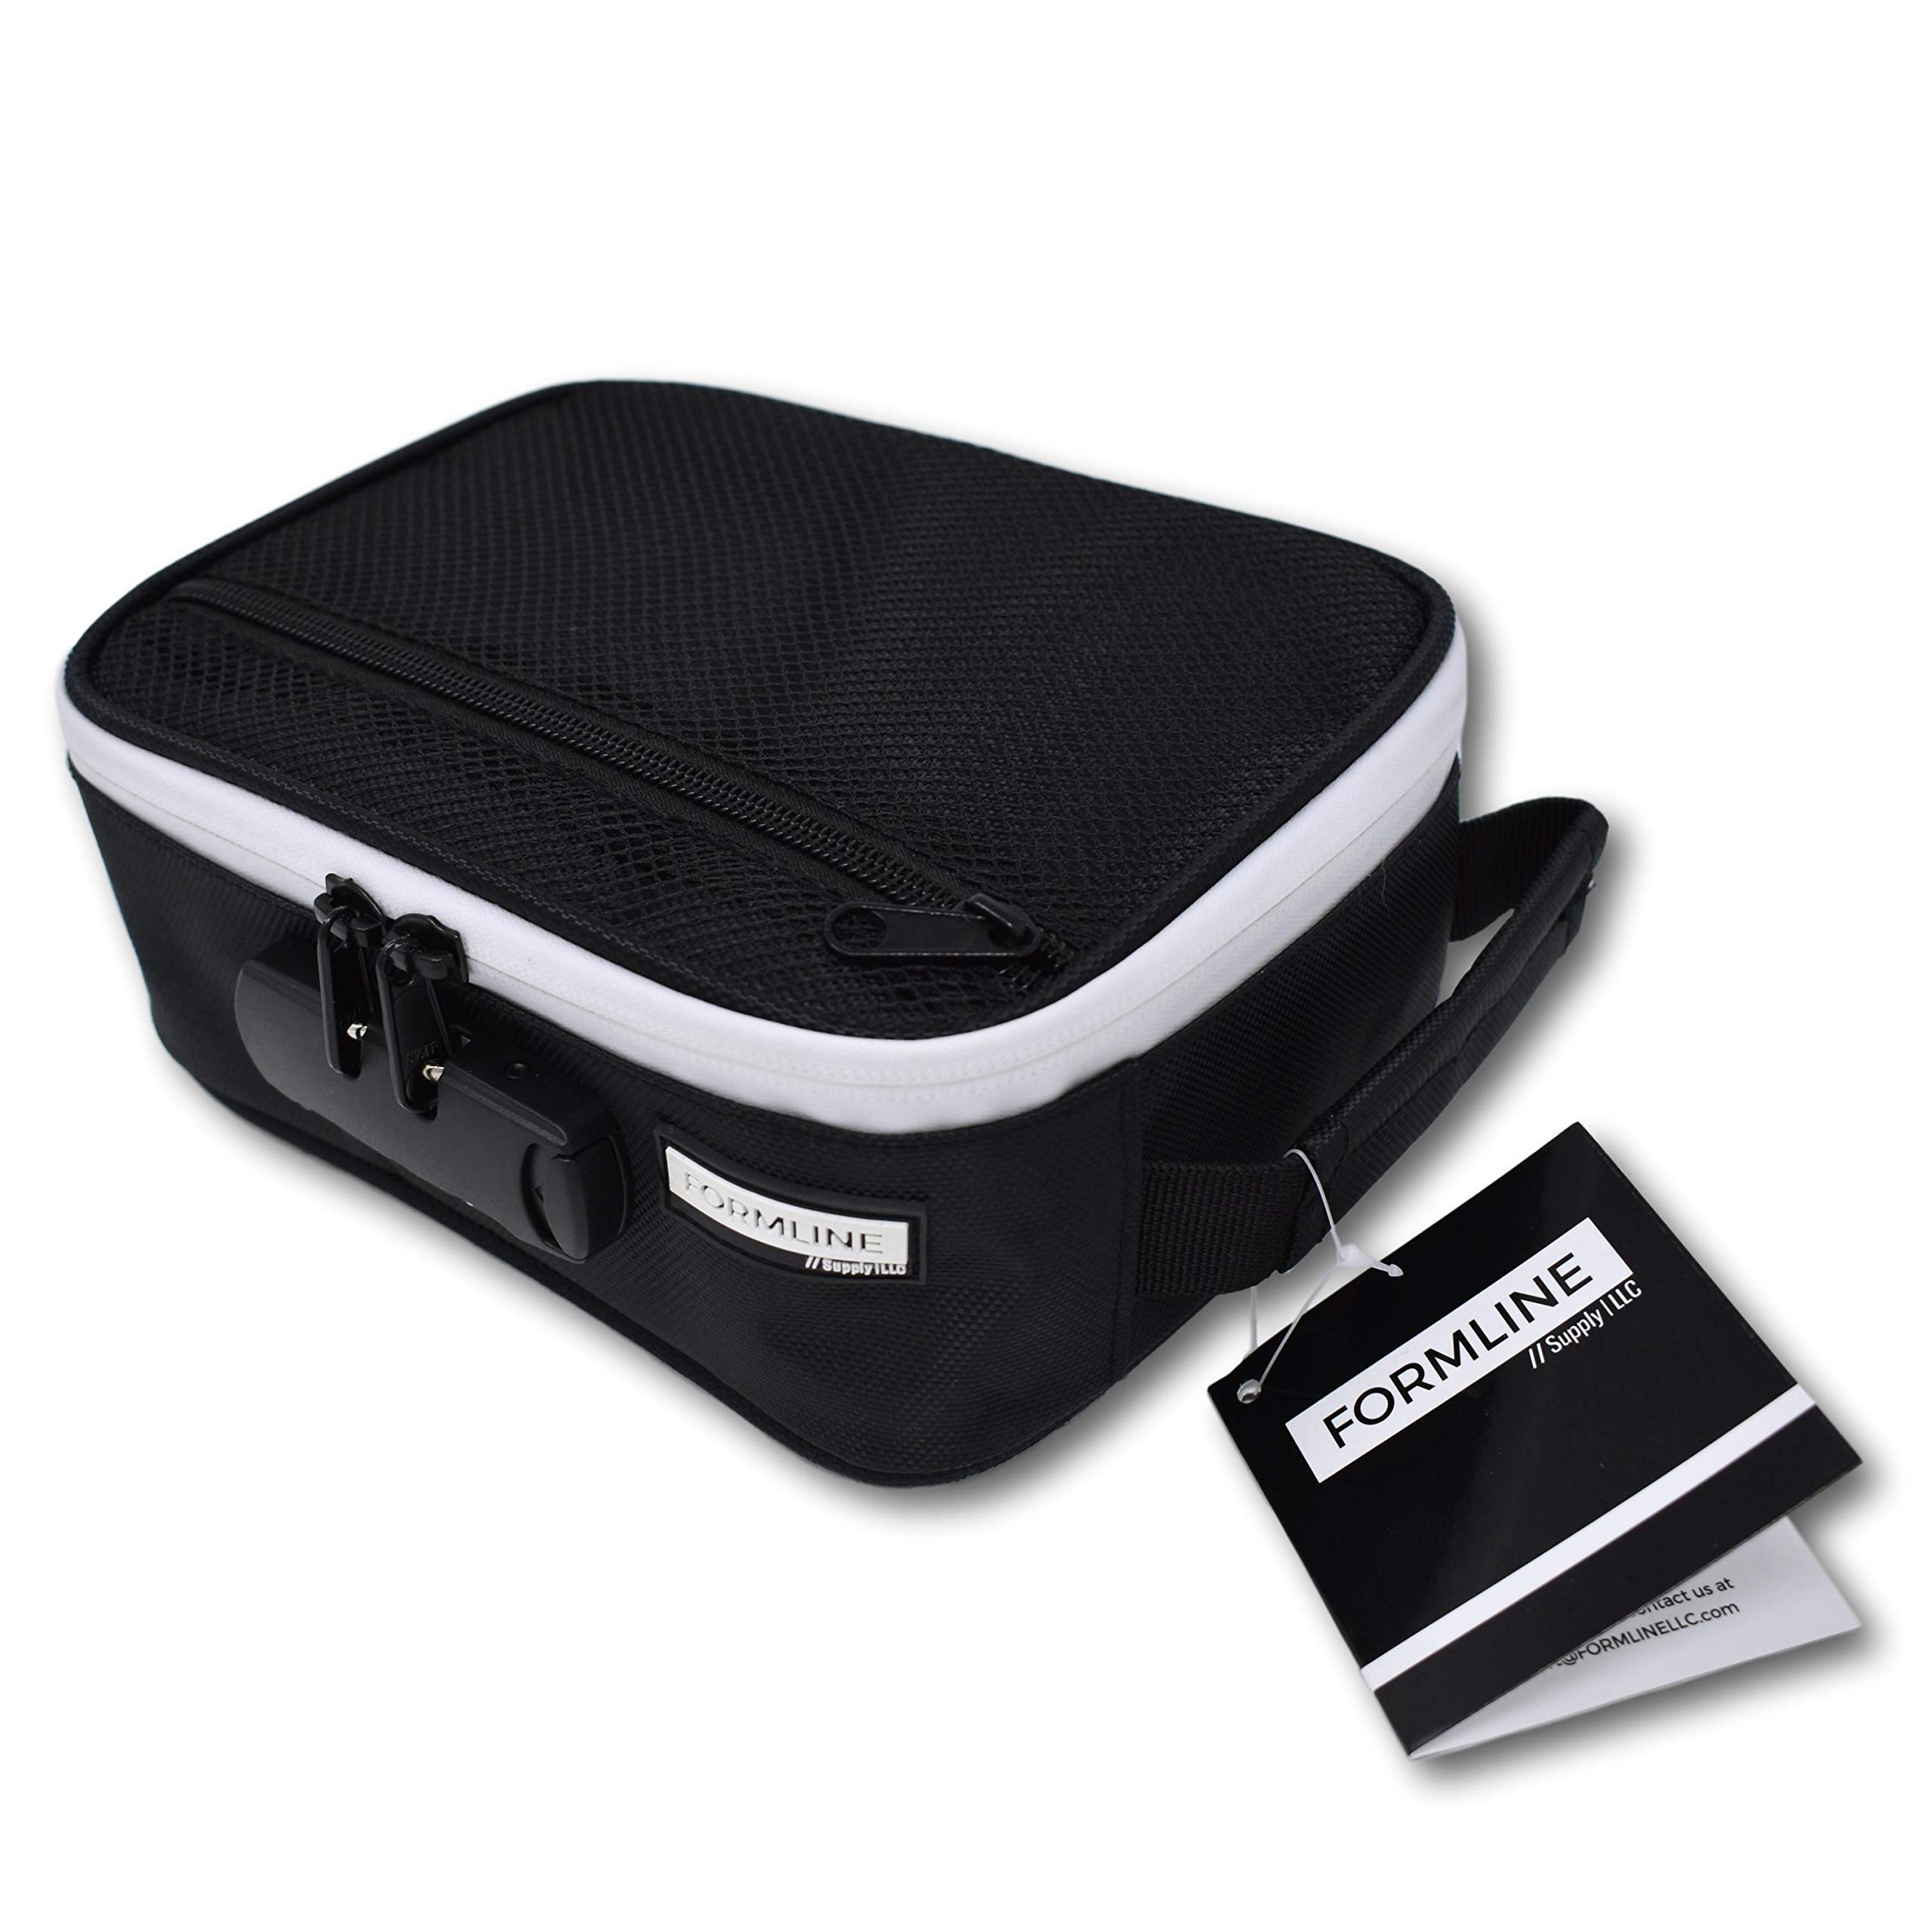 Formline Smell Proof Case with Combination Lock 8x6x3 - Premium Odor Proof Bag for All Your Accessories. Eliminate Odor - No Smell Escapes This Discreet Stash Container.